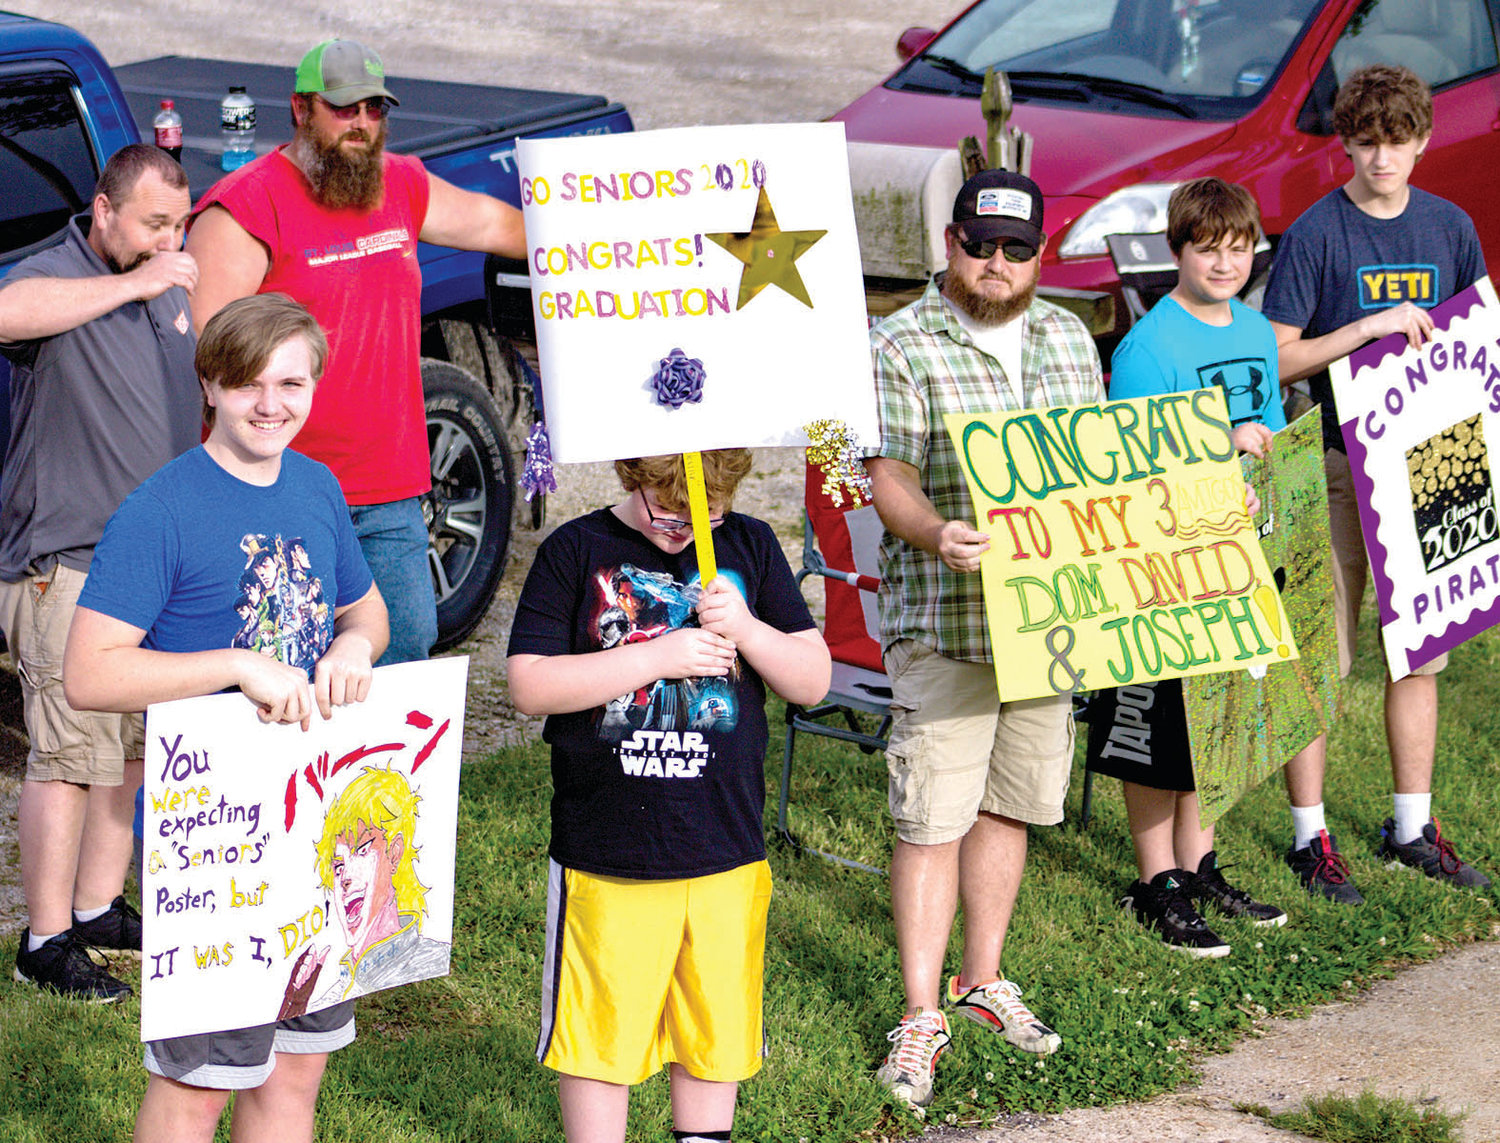 Signs and smiles were the theme as Chamois graduates took part in a parade on Friday.